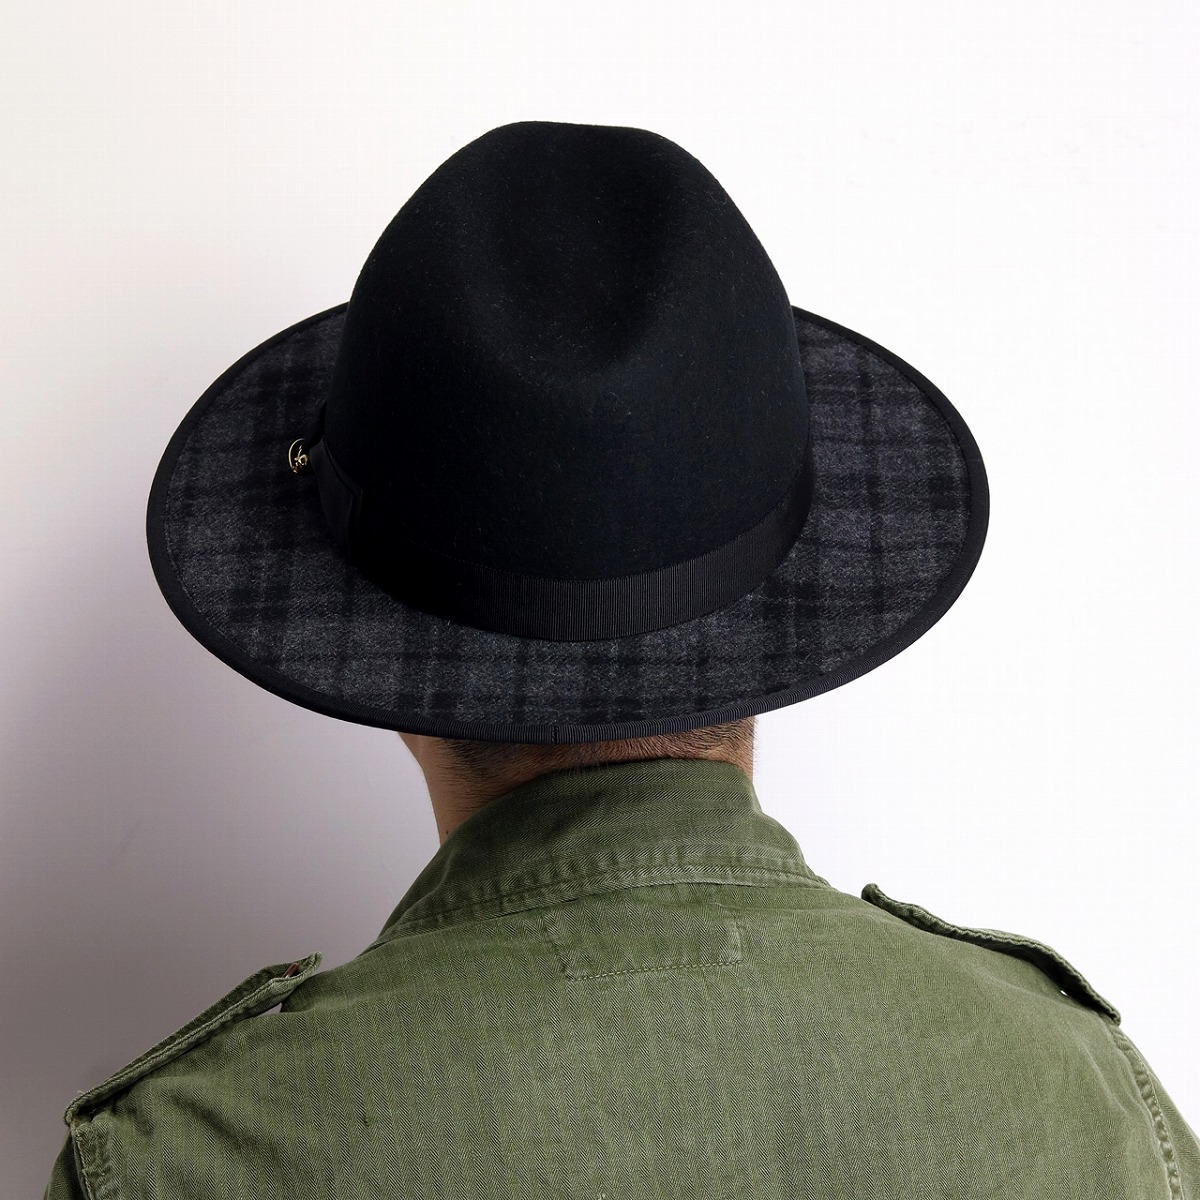 ce799d805ac ... Stylish woolen Hat mens check pattern flat brim brim wide Hat men's  autumn/winter made